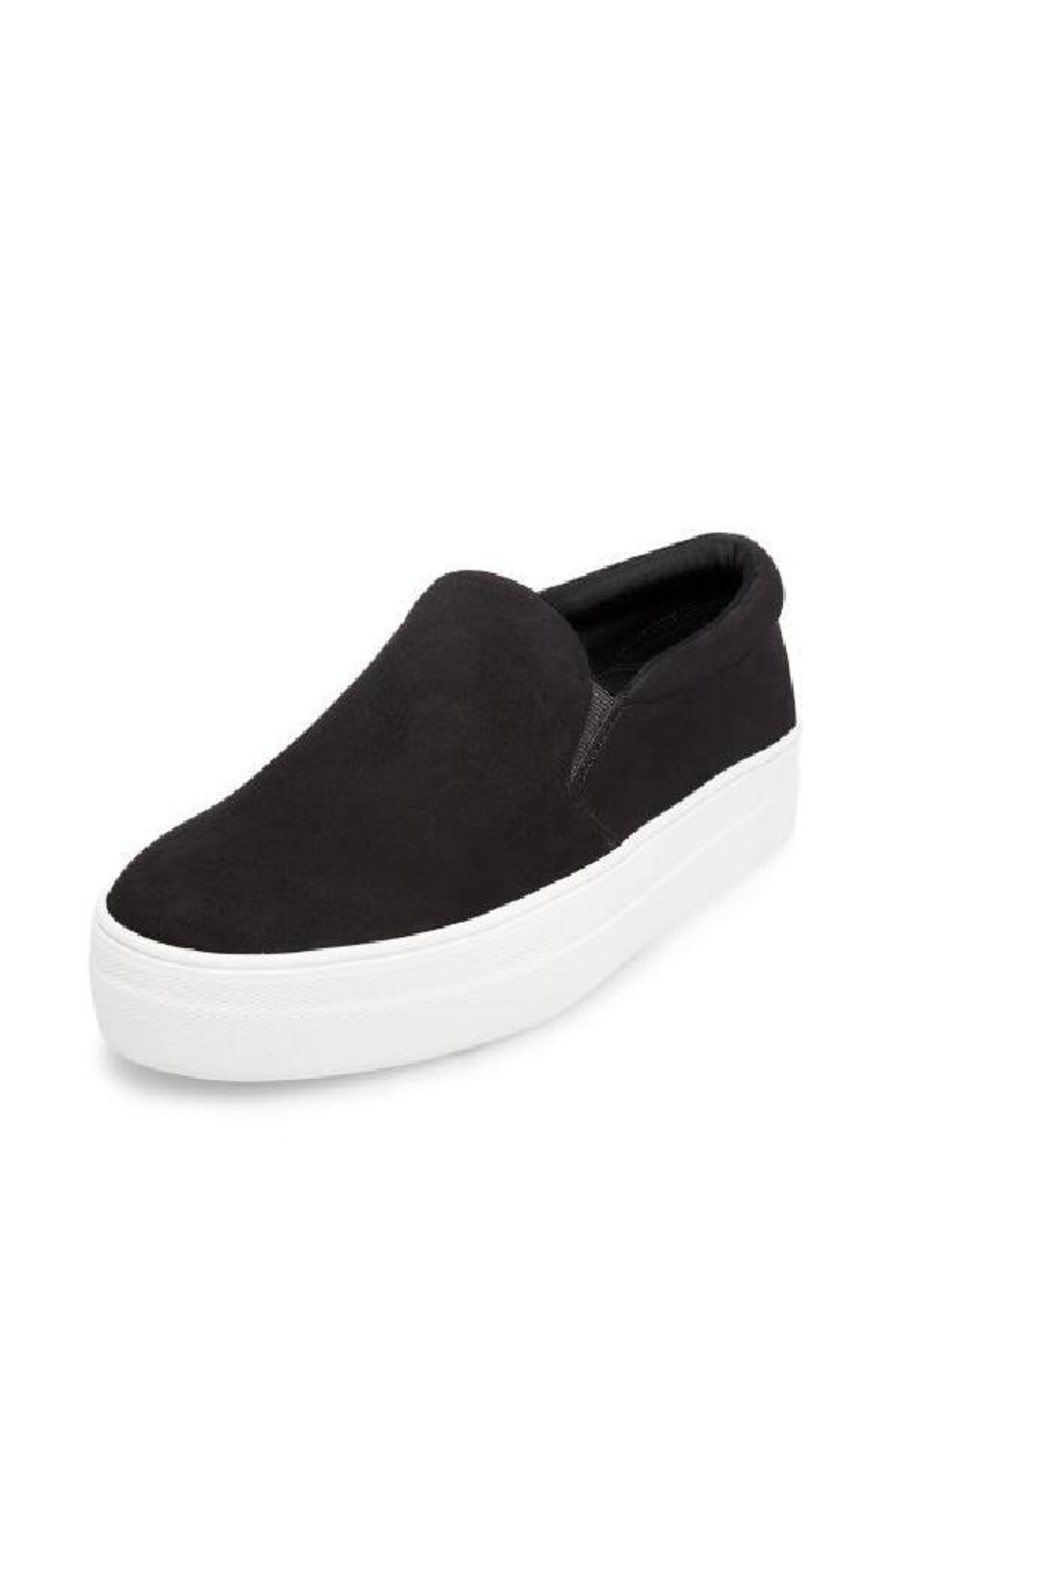 Steve Madden Gills Sneakers - Front Cropped Image